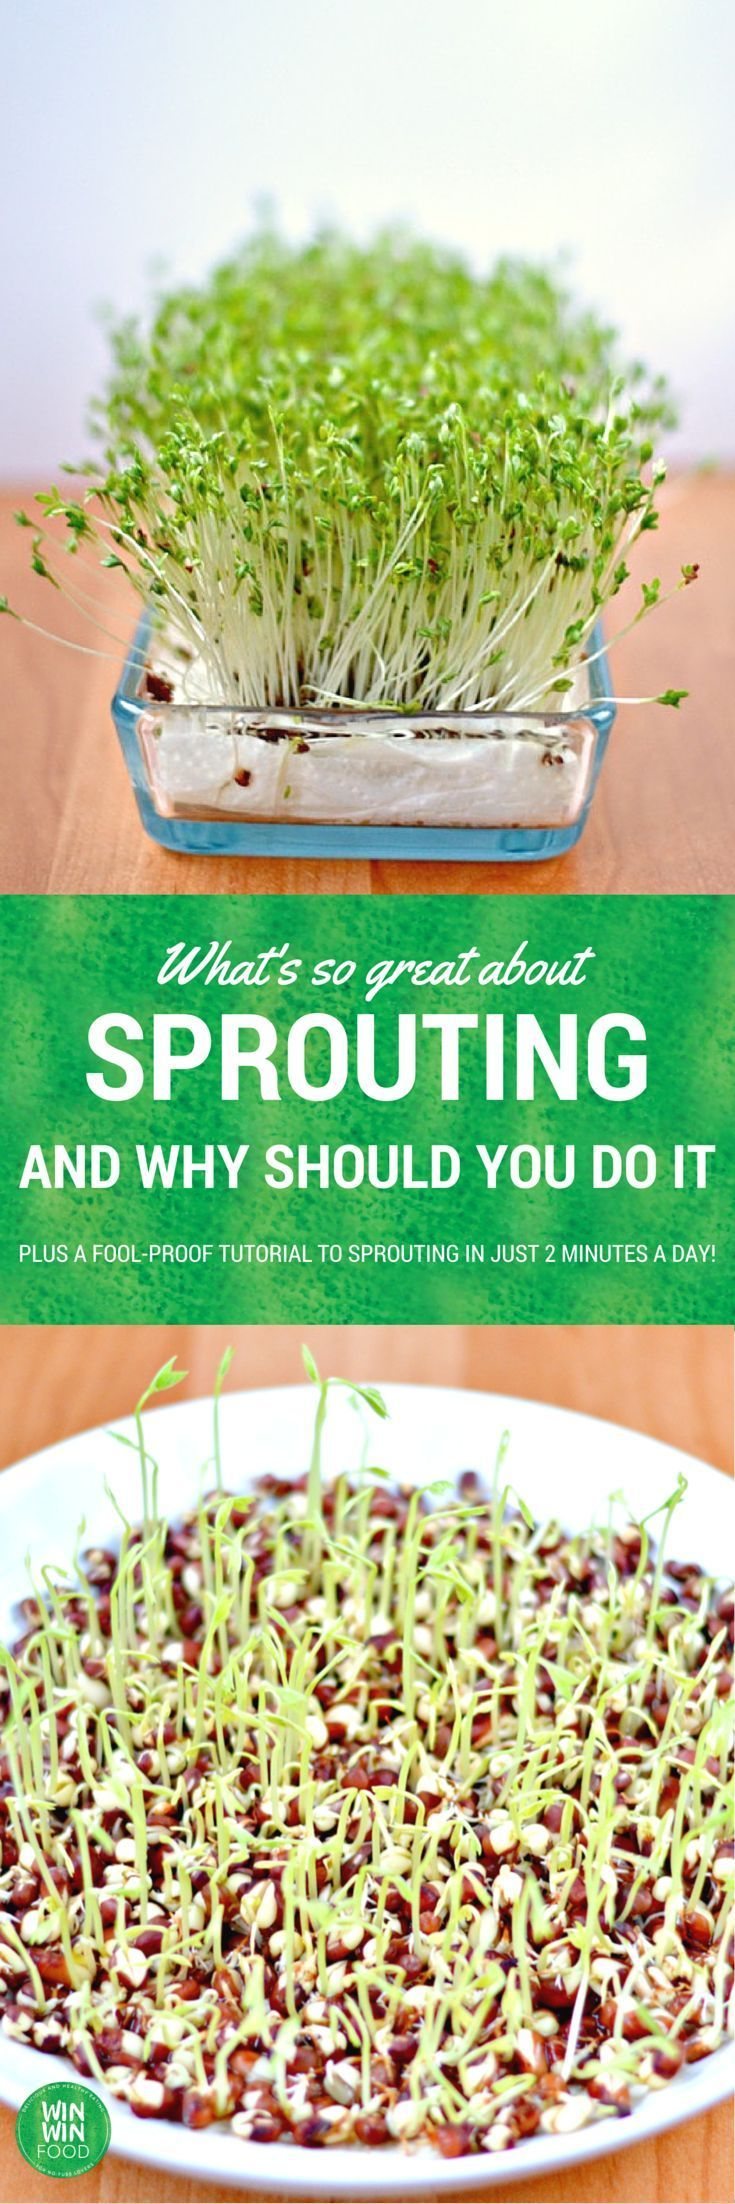 Sprouting Tutorial | WIN-WINFOOD.com #healthyliving #nutrition